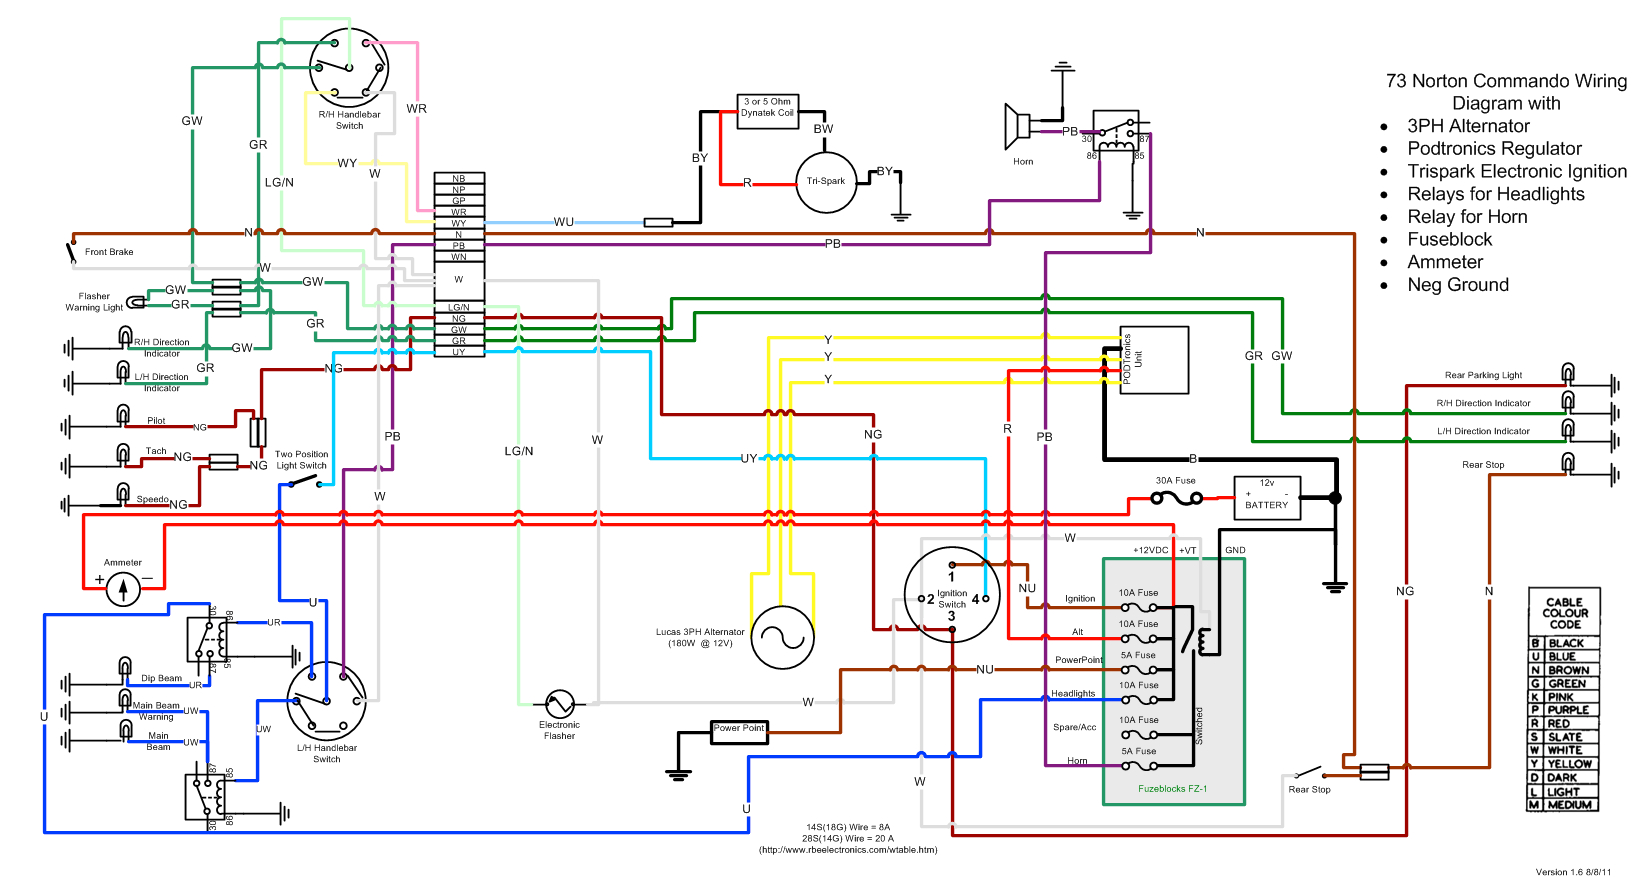 5 Way Switch Wiring Diagram Pdf from wholefoodsonabudget.com